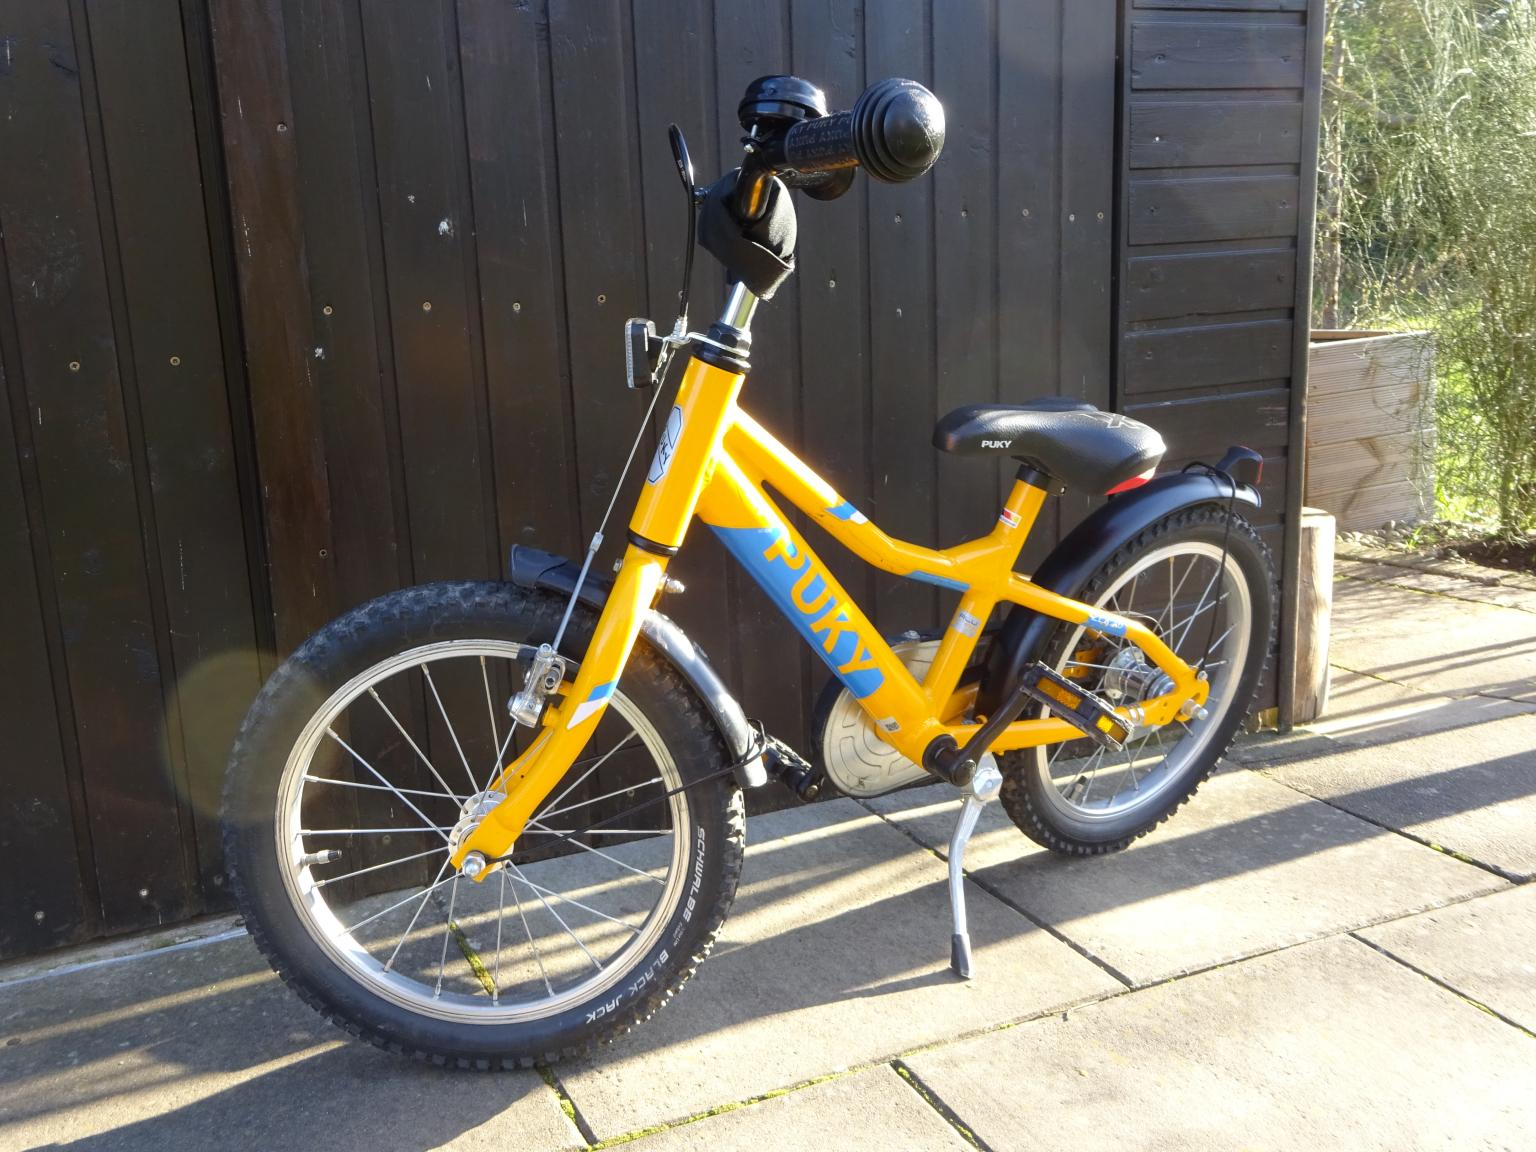 Kinderfahrrad 16 Zoll Puky ZLX 16 in 76877 Offenbach an der